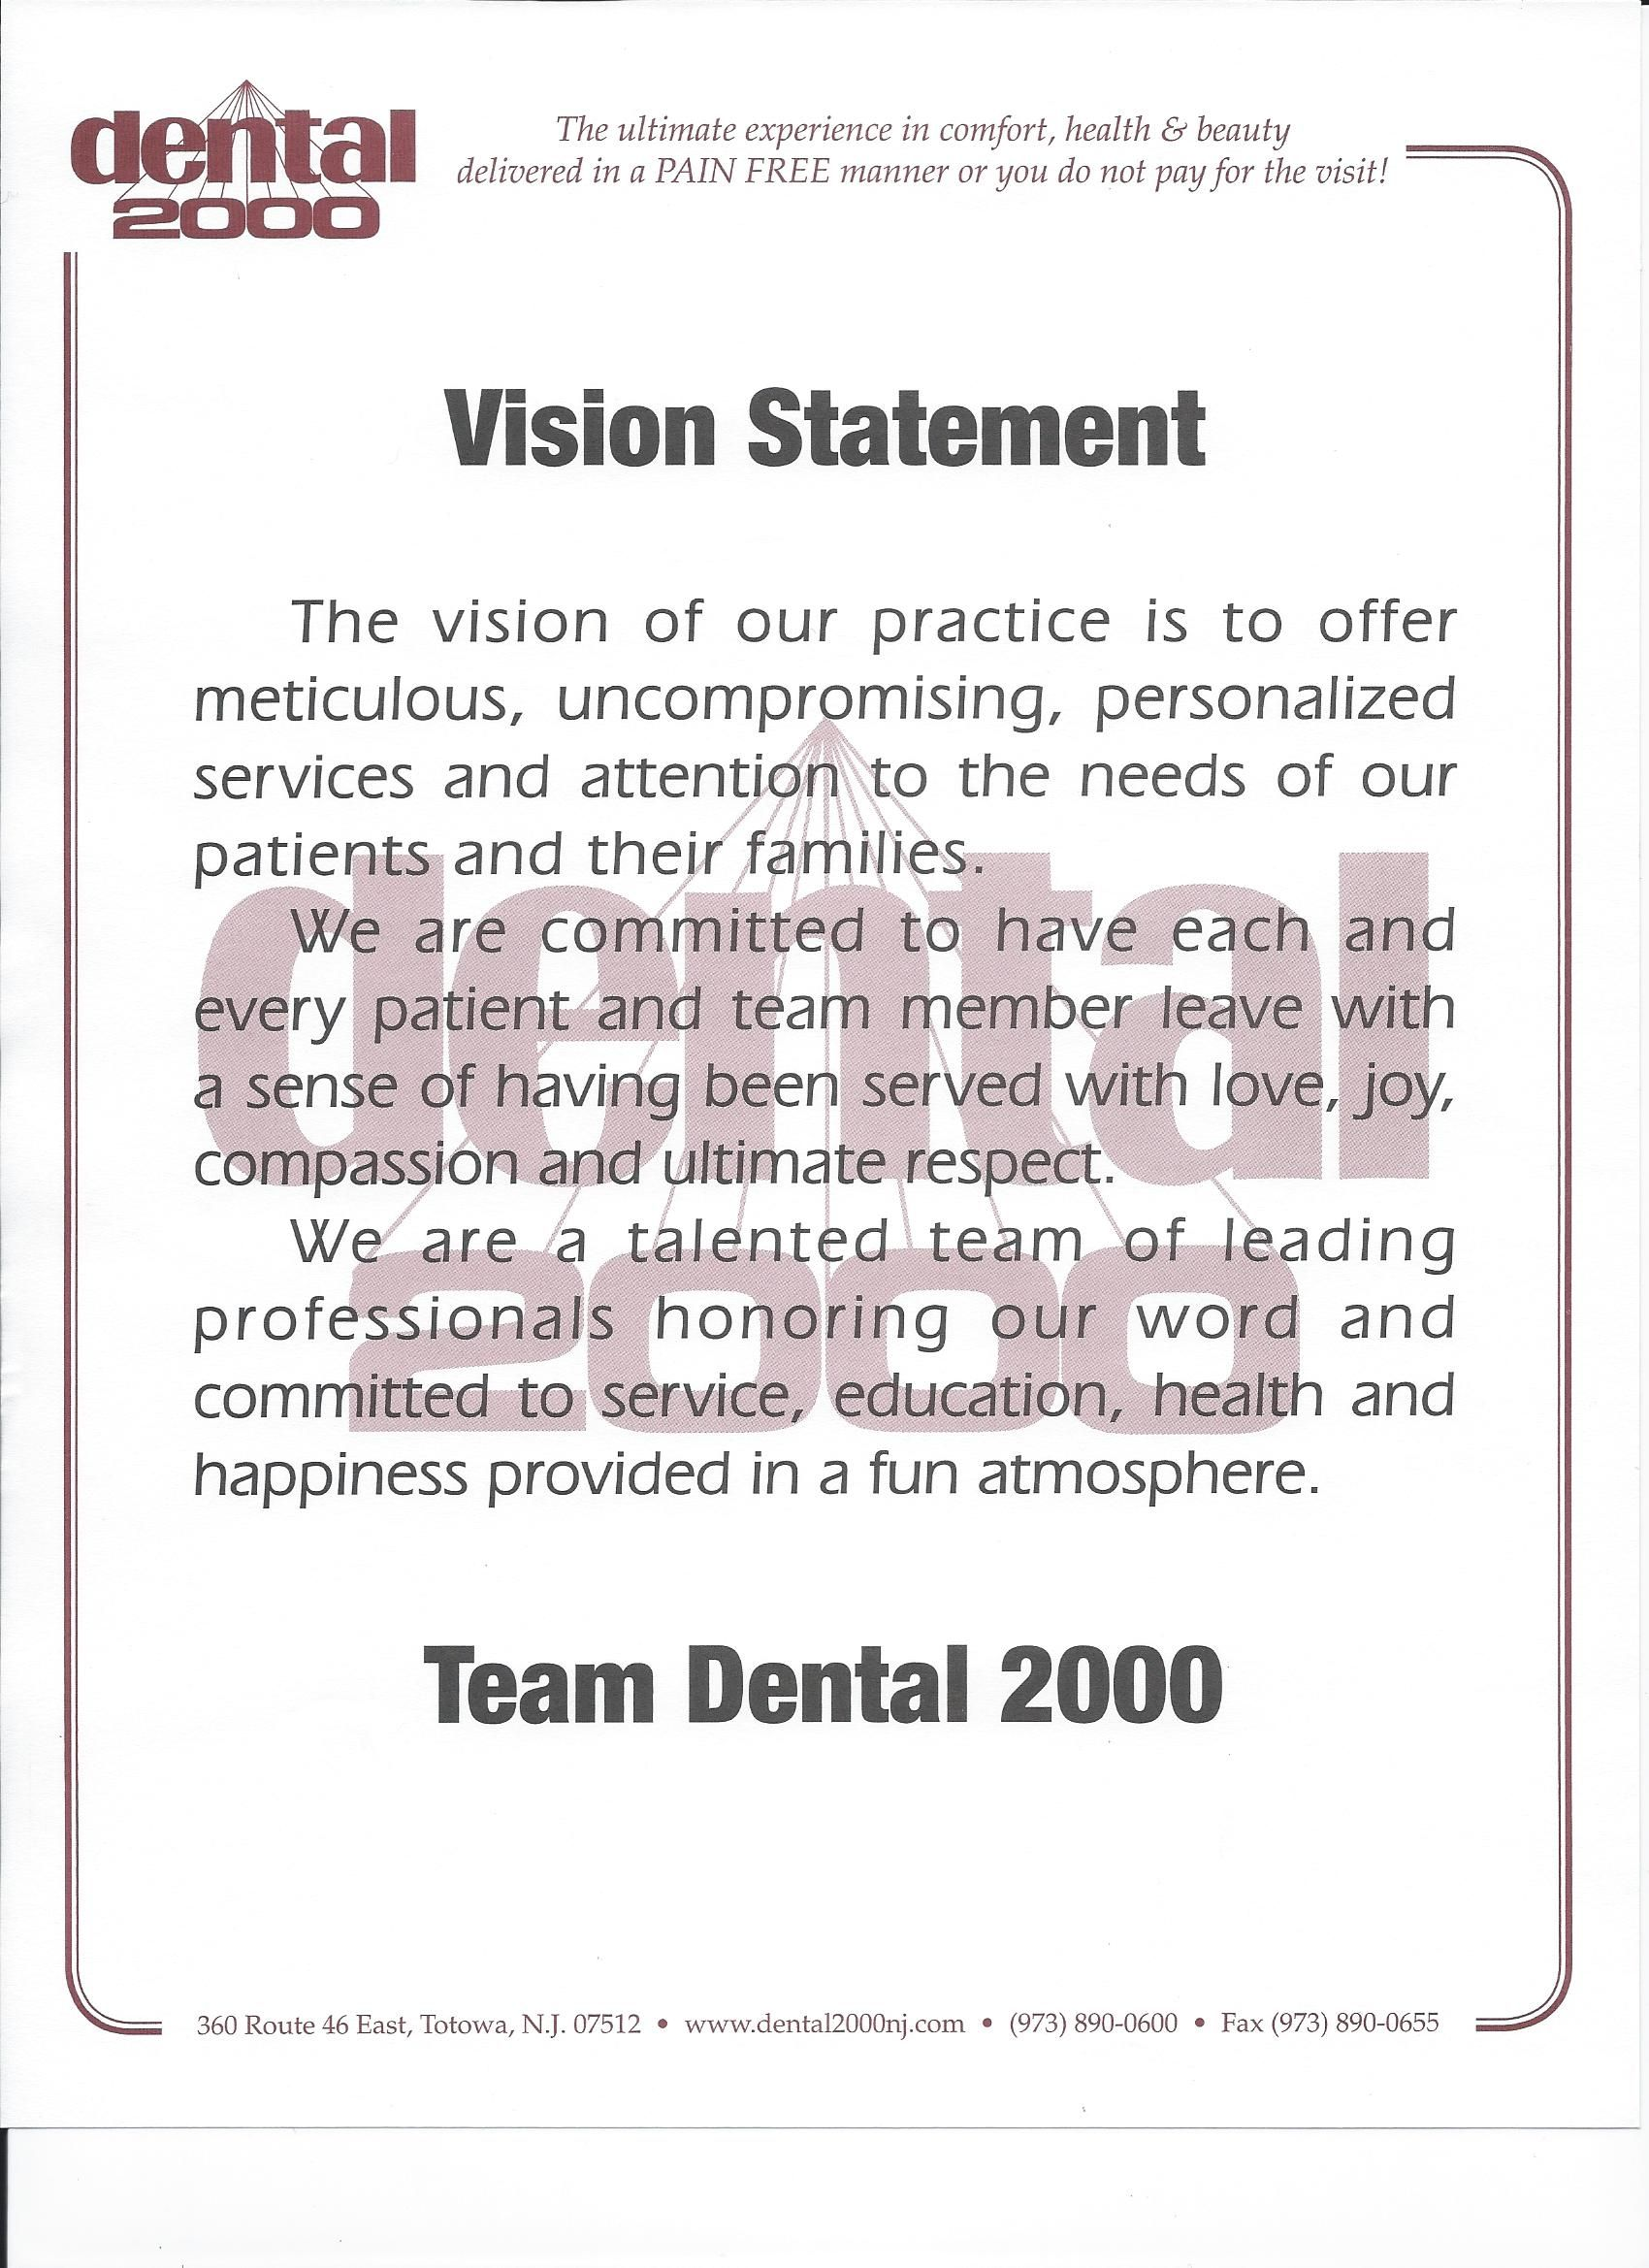 Team Dental 2000 Reads This Vision Statement Each Morning To Remind Themselves Of The Reason Why They Serve Their Patients With Integrity Go Dental 2000 Dent Lifetime fitness employee mission statement